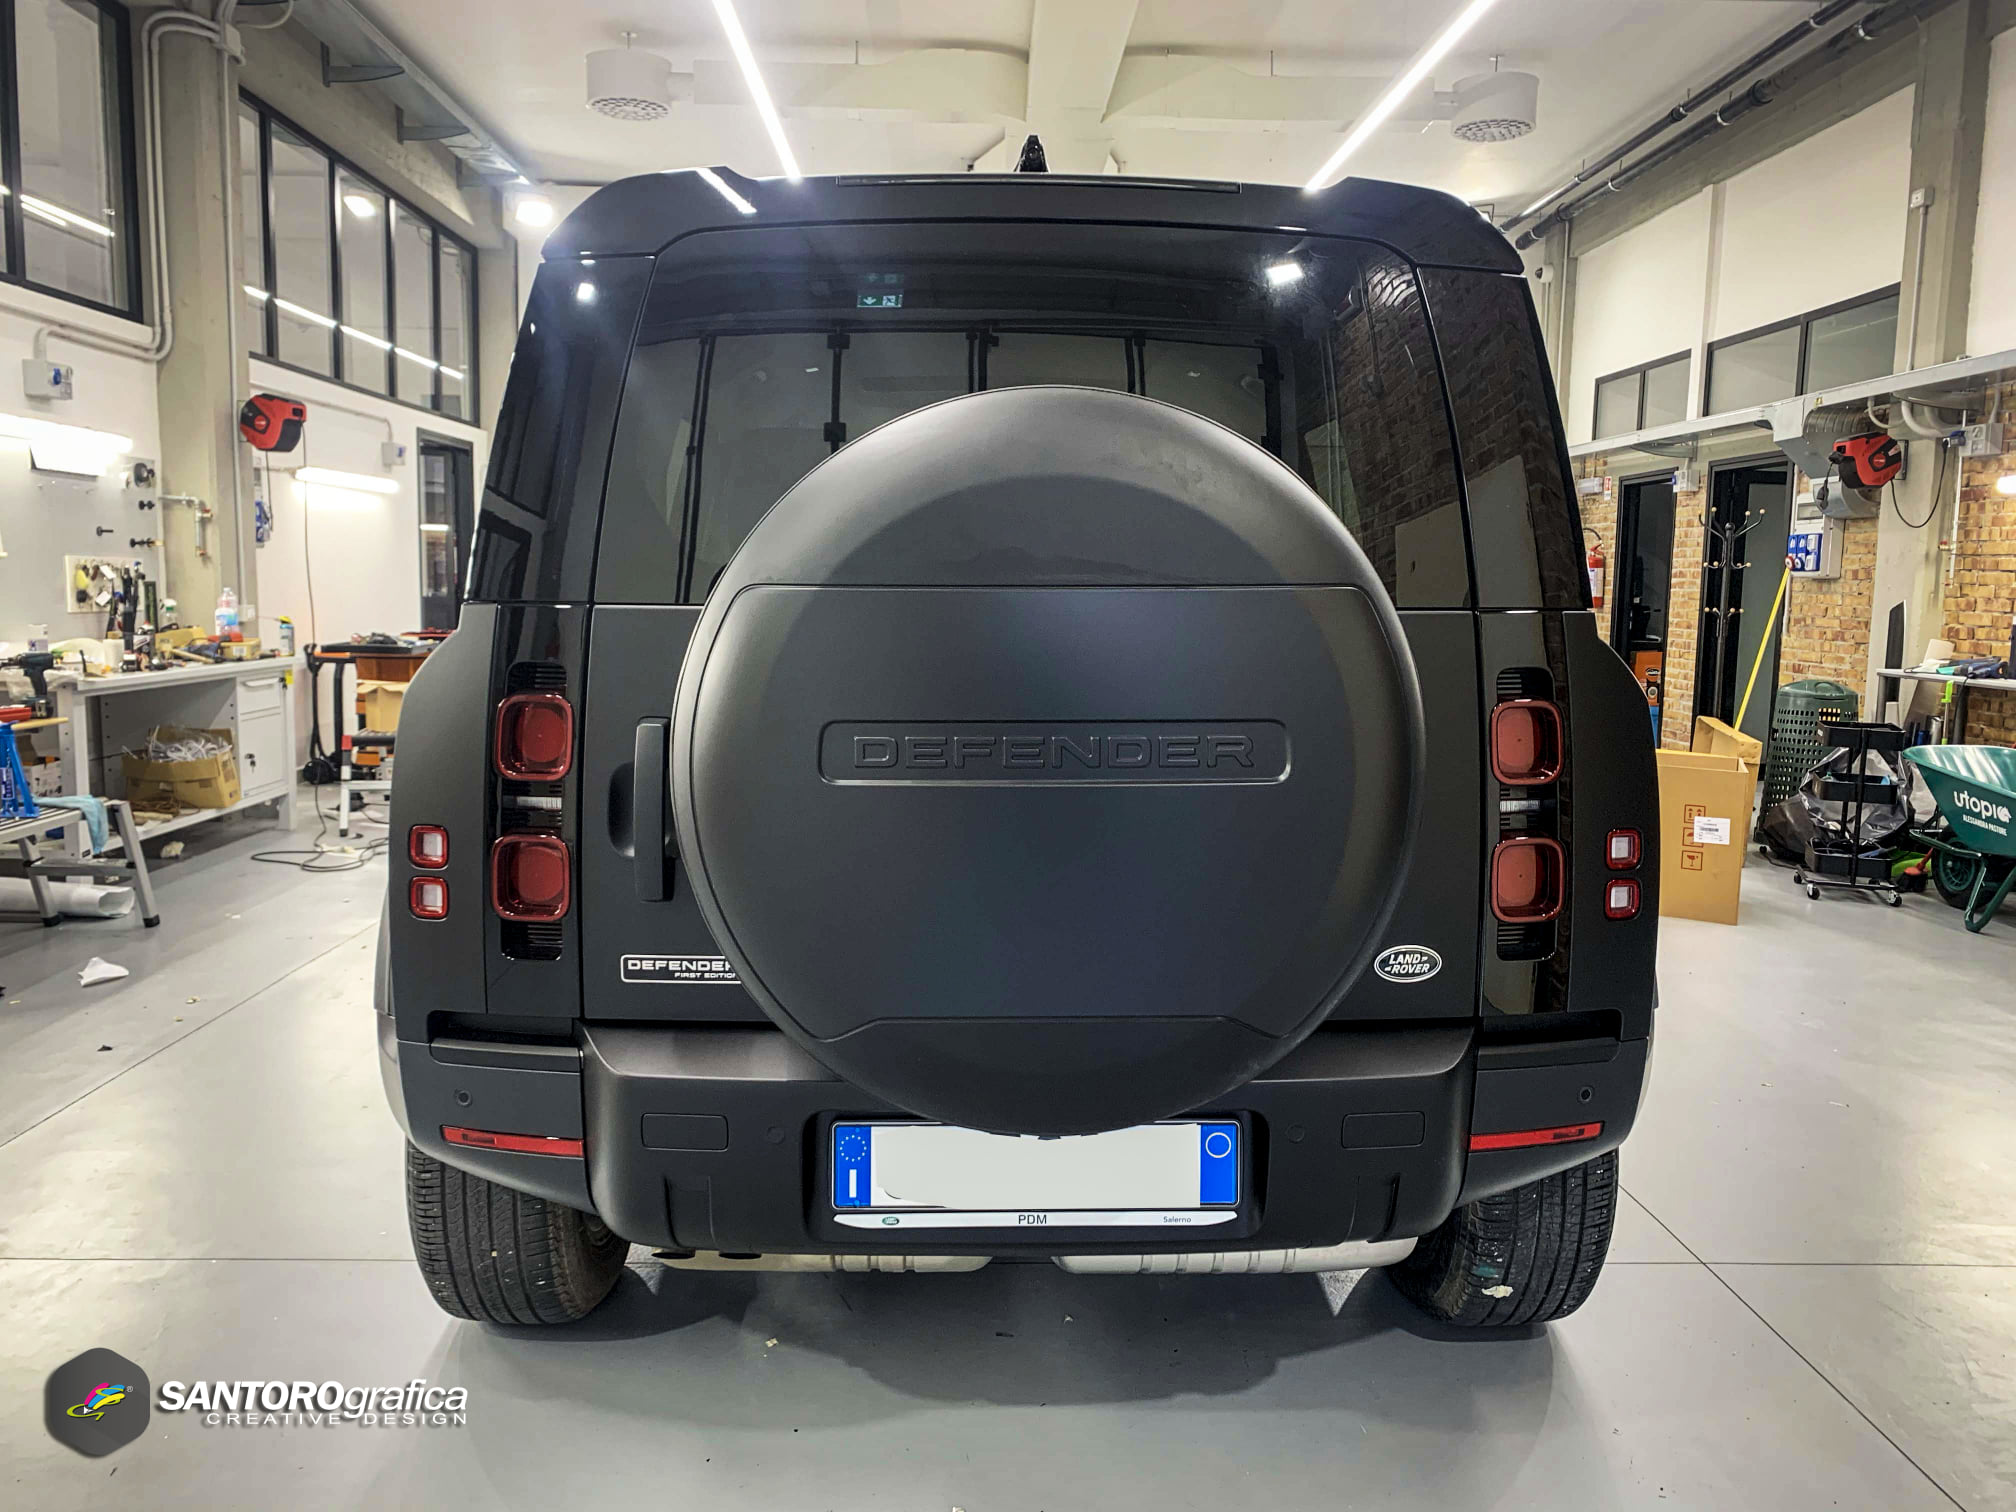 car wrapping land rover defender nero opaco 6